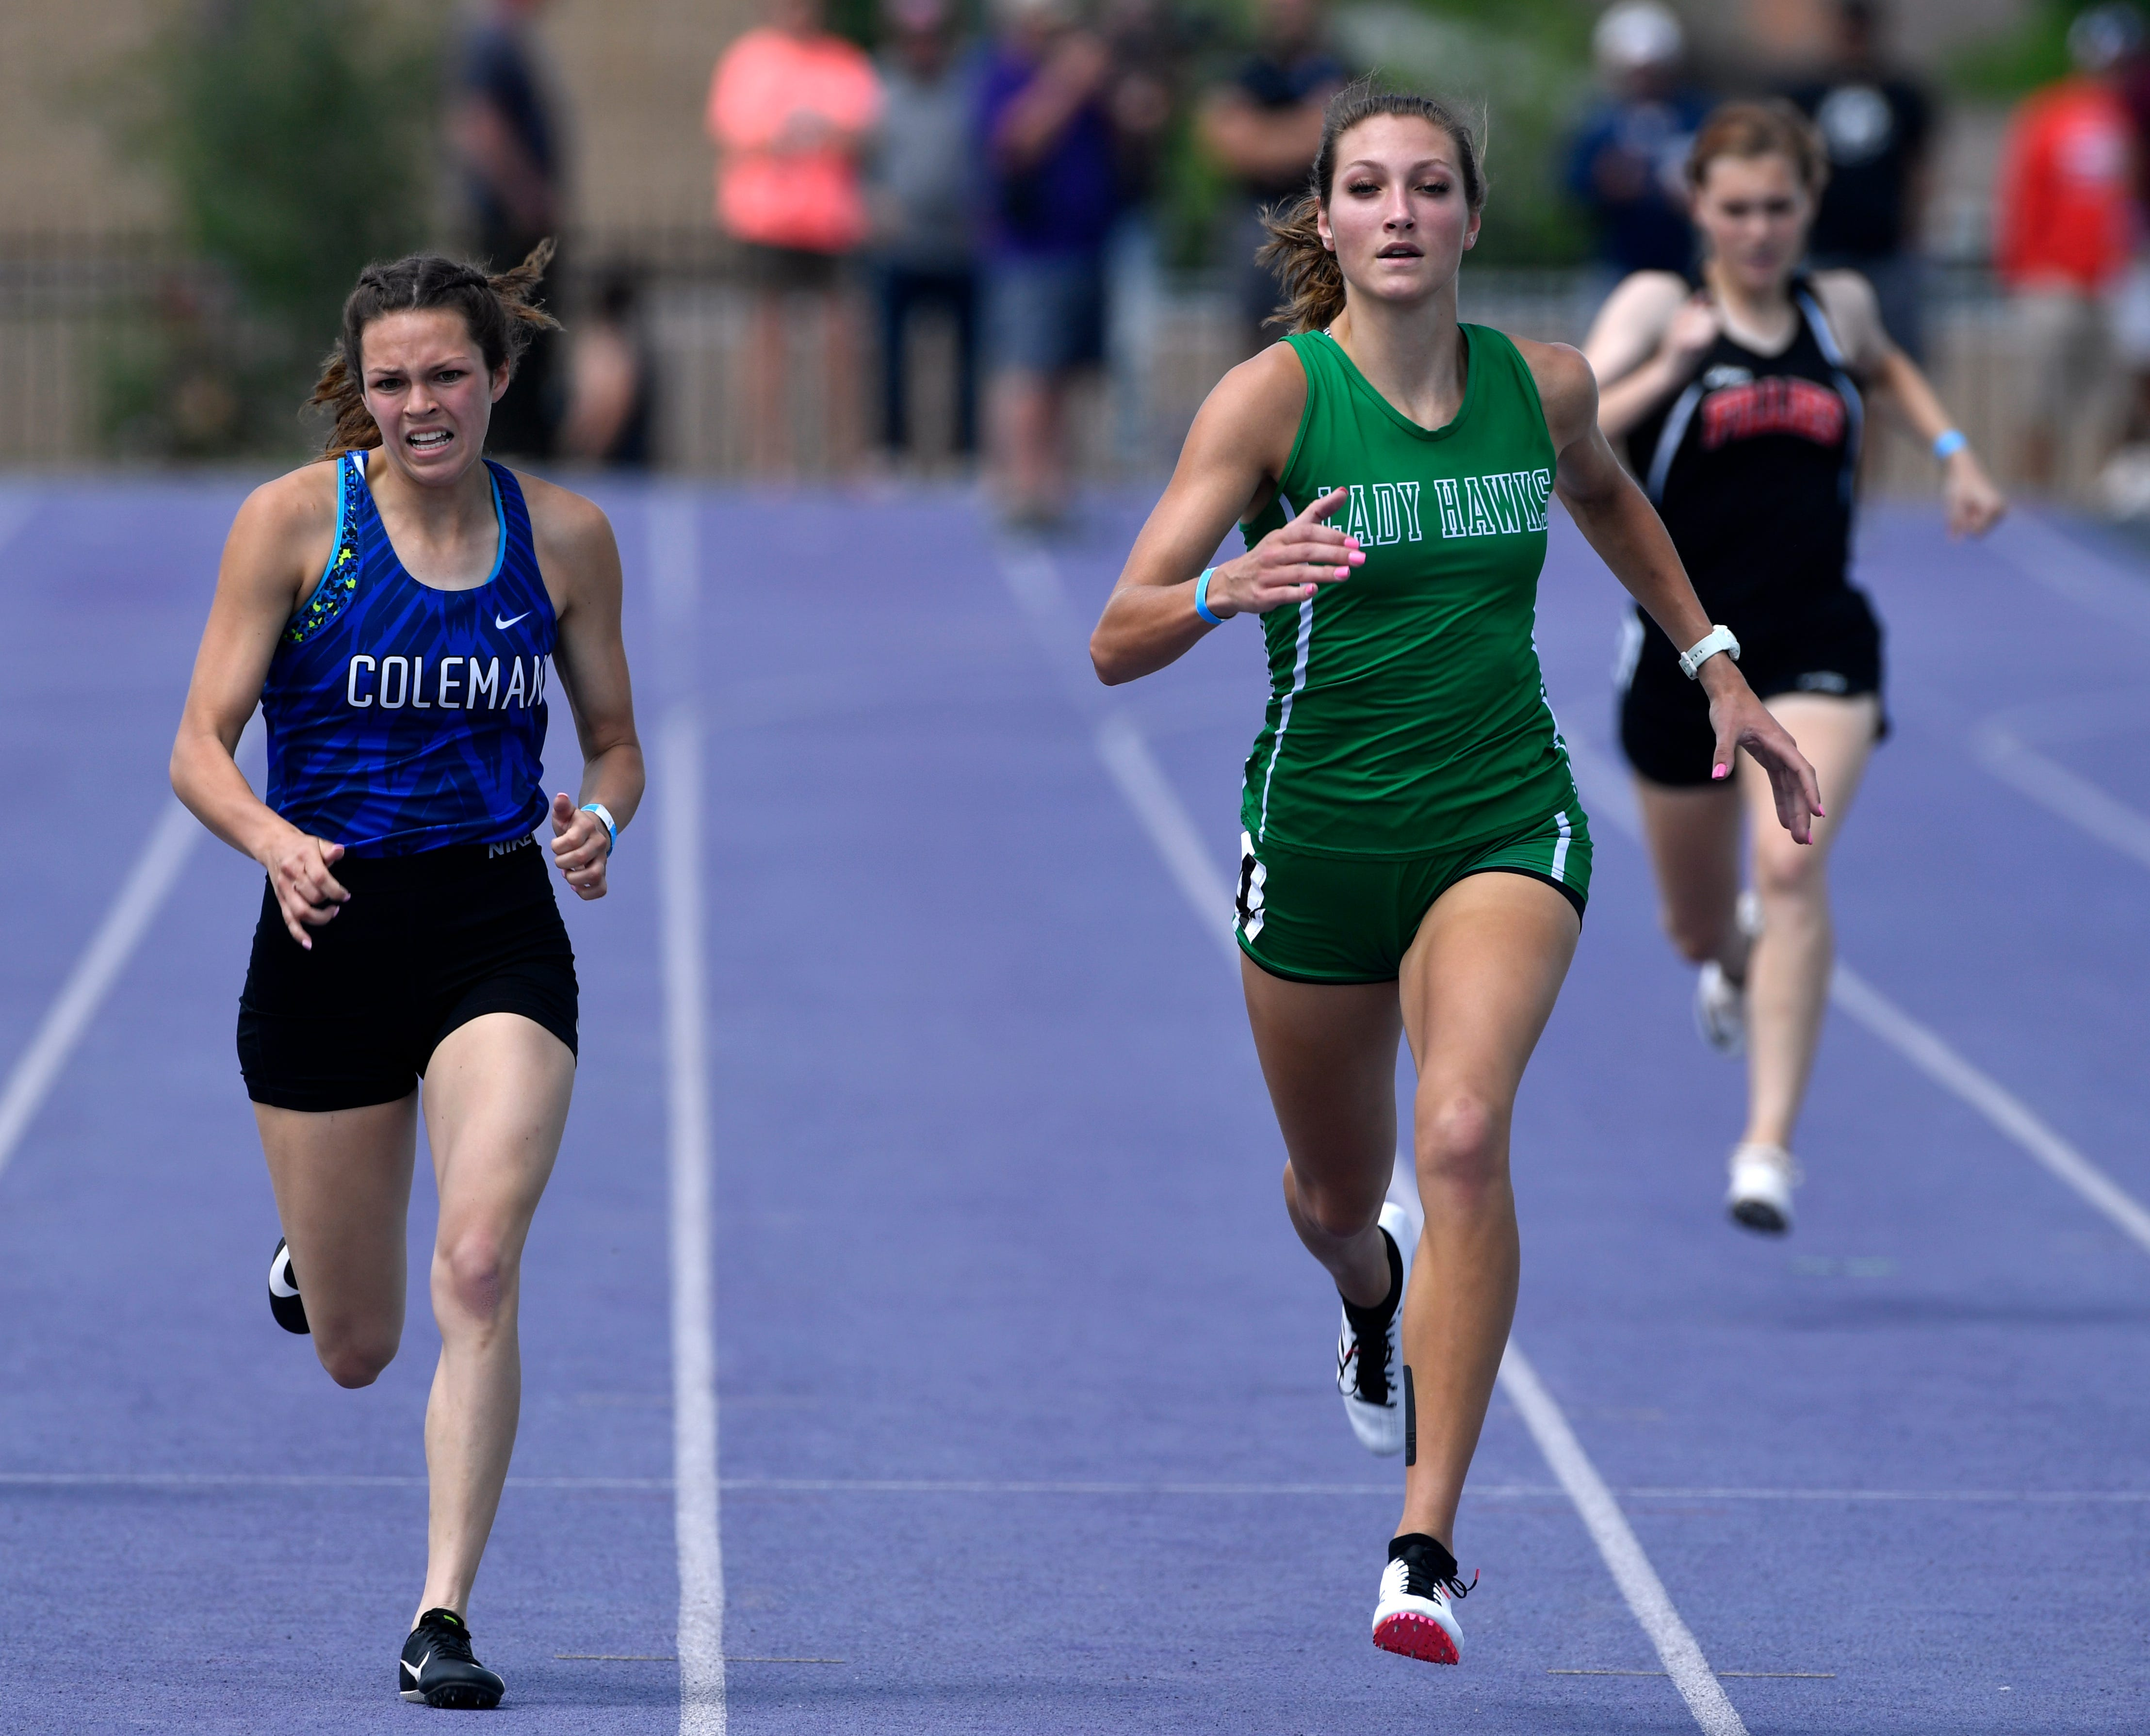 Shiean Walters of Coleman tries to close the distance between her Wall's Jayden Fiebiger in the 400 meter dash during Saturday's Region 1-3A track meet at Abilene Christian University April 27, 2019.